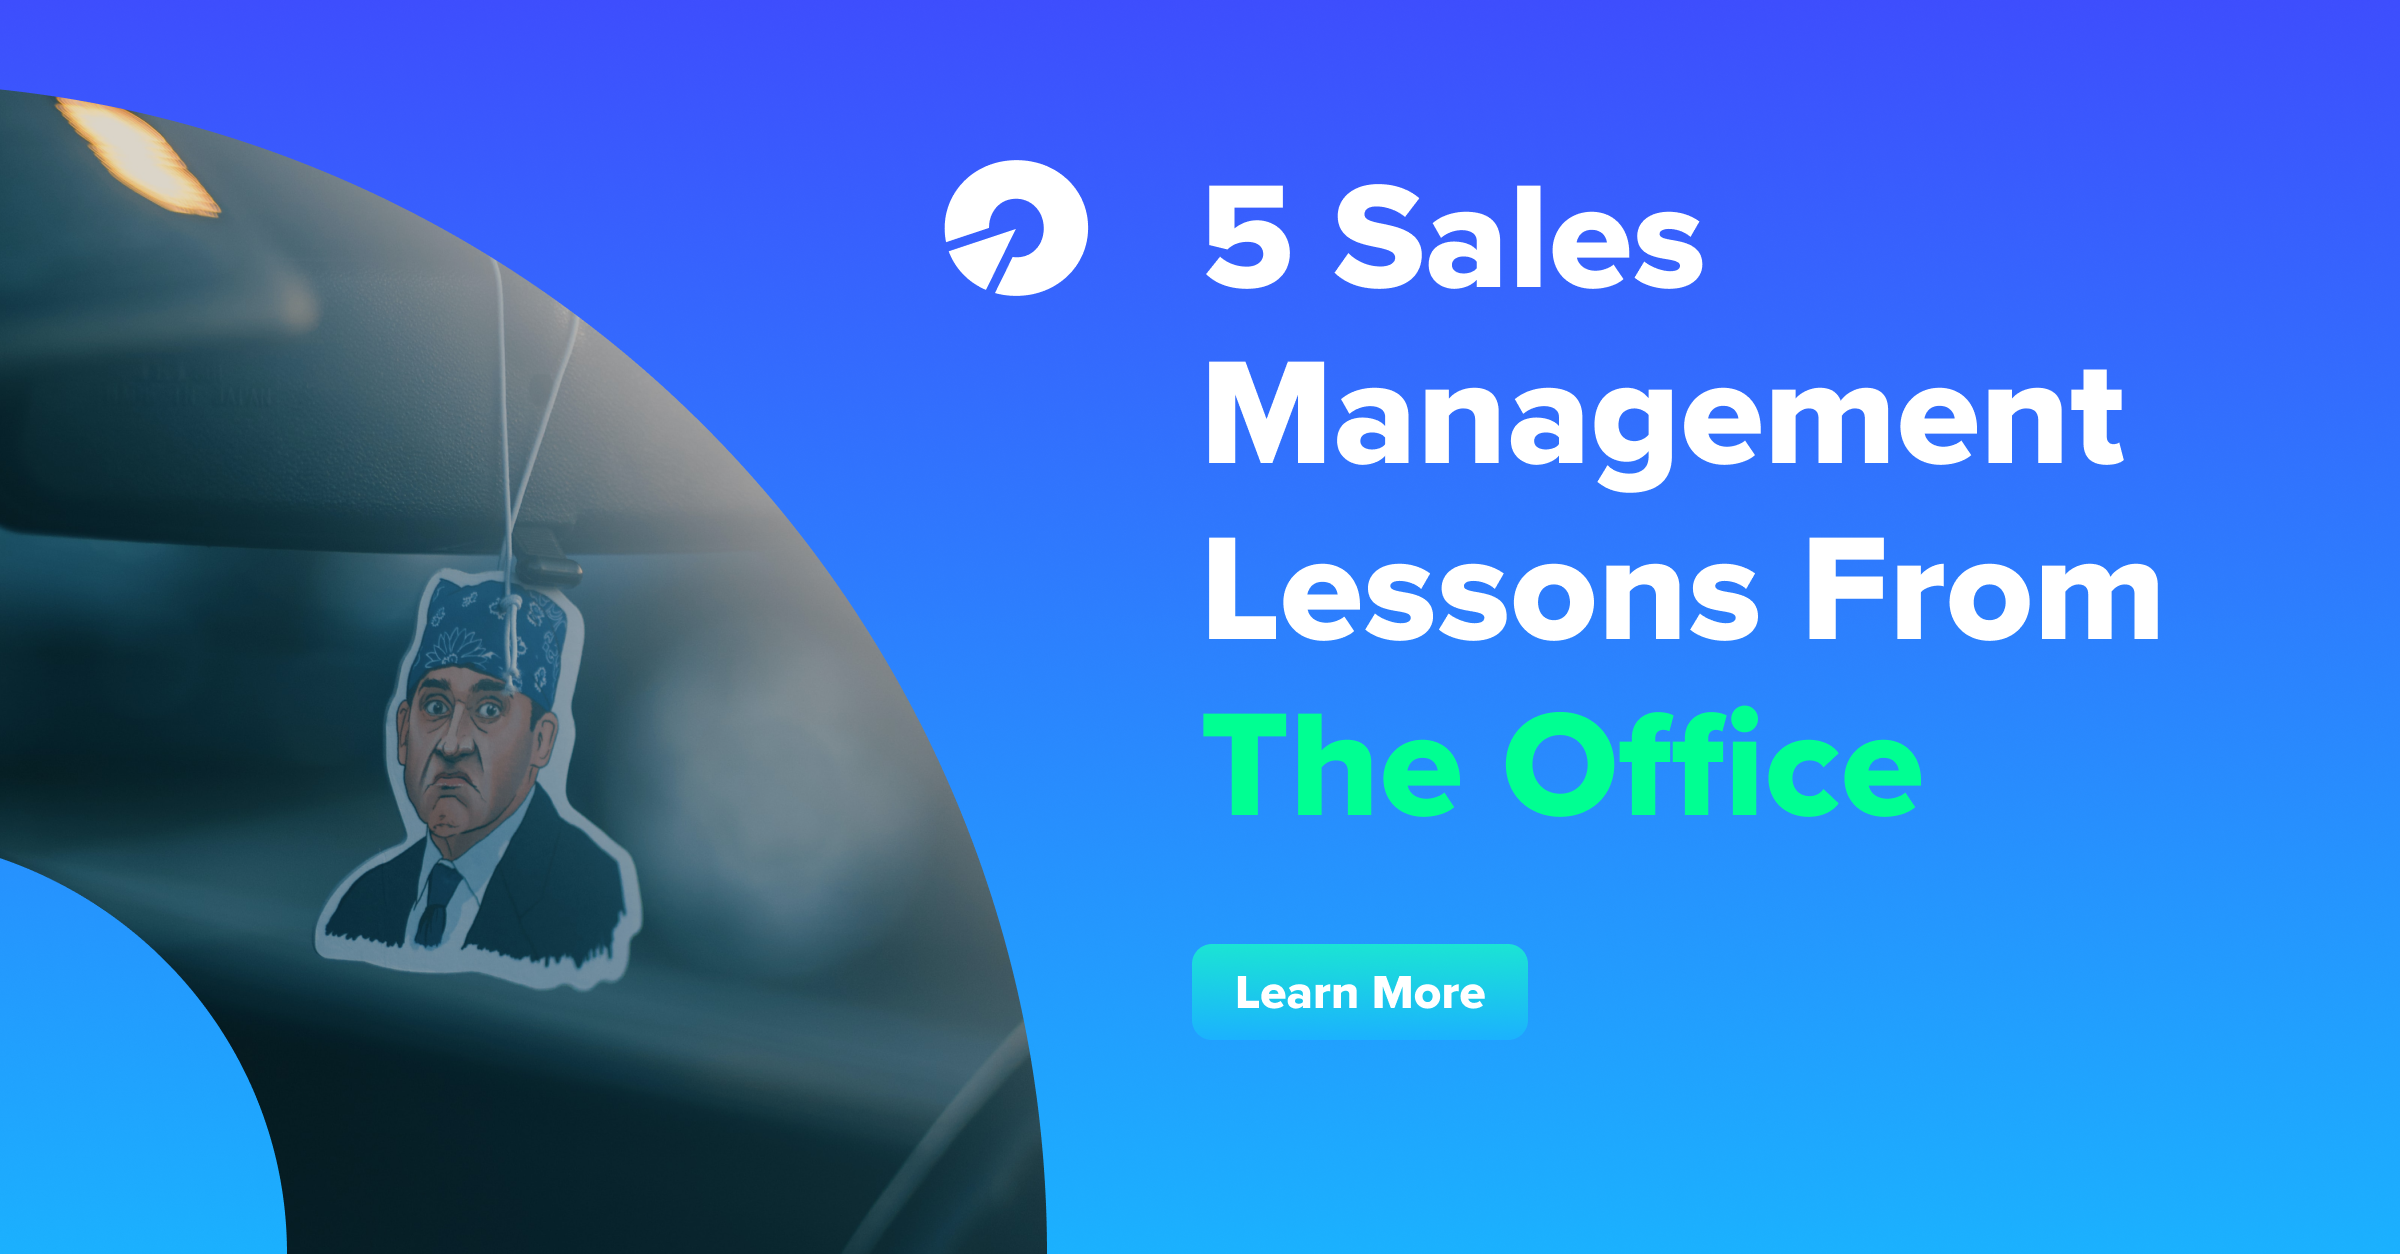 5 Sales Management Lessons From The Office